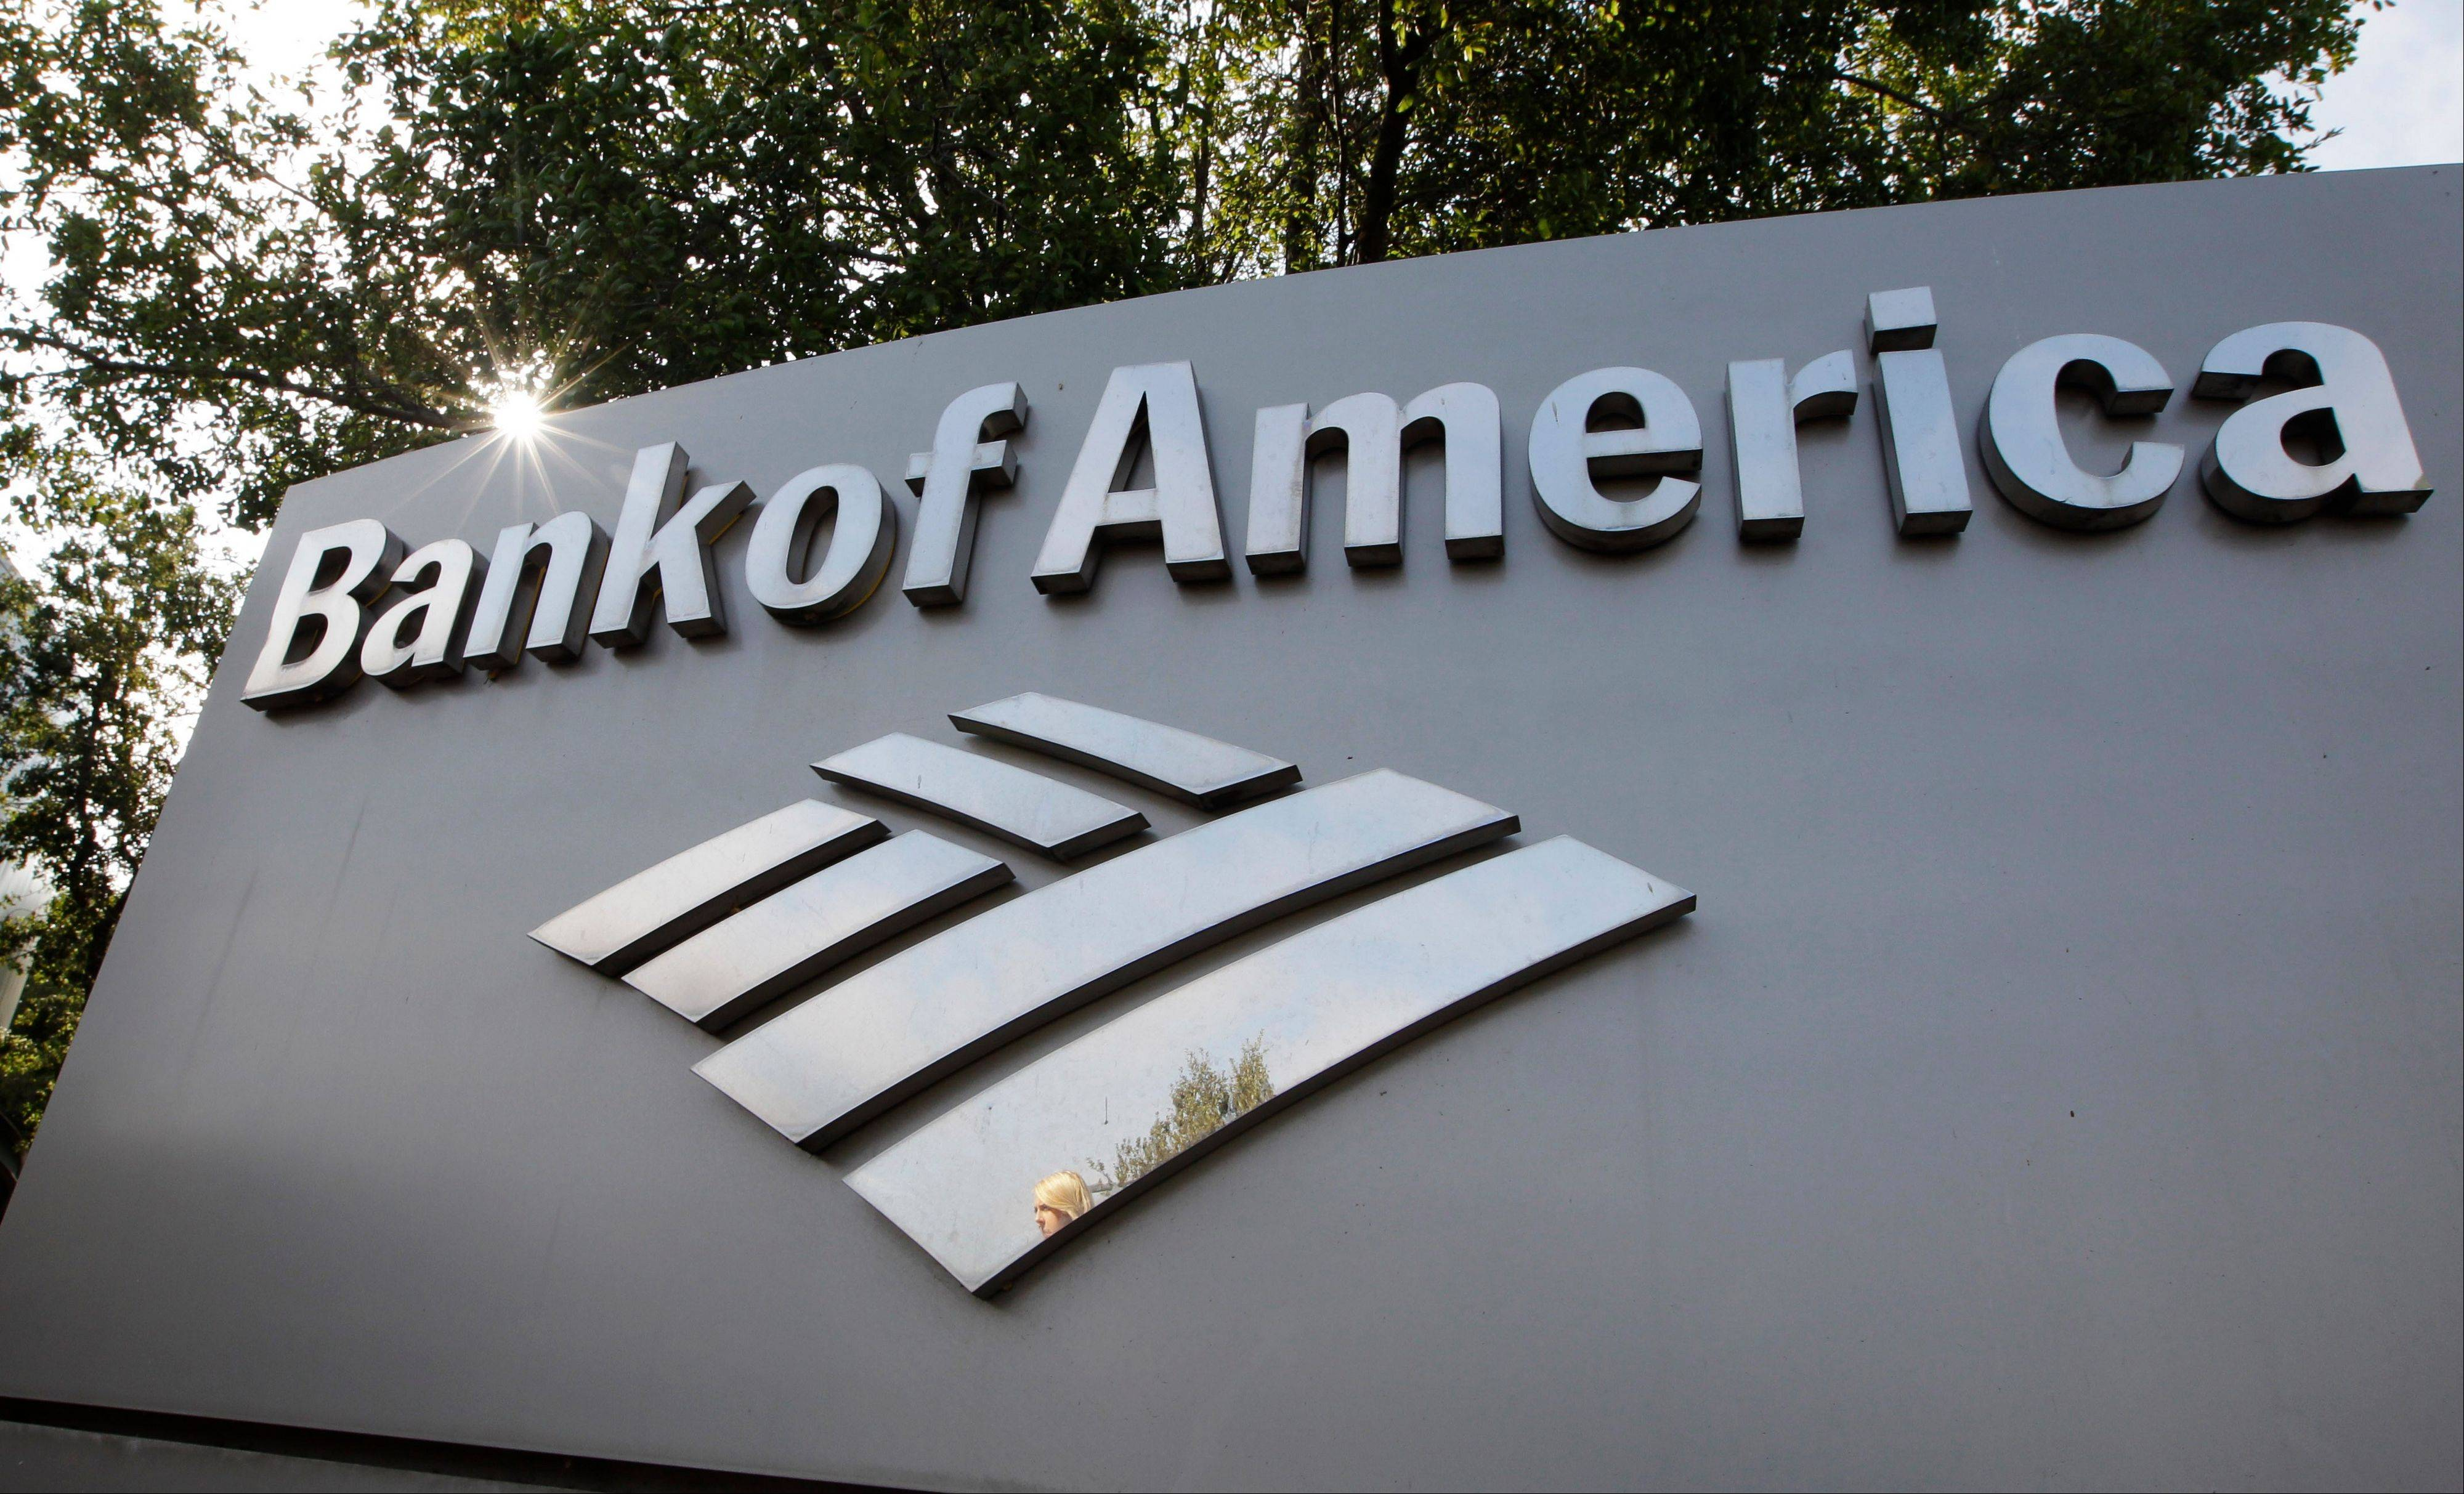 A Bank of America logo is displayed at a branch office in Palo Alto, Calif., Monday, Sept. 12, 2011. Bank of America will cut about 30,000 jobs over the next few years in a bid to save $5 billion per year. The cost-cutting drive is part of a broader effort to reshape and shrink the nation's largest bank as it copes with fallout from the housing bust. (AP Photo/Paul Sakuma)